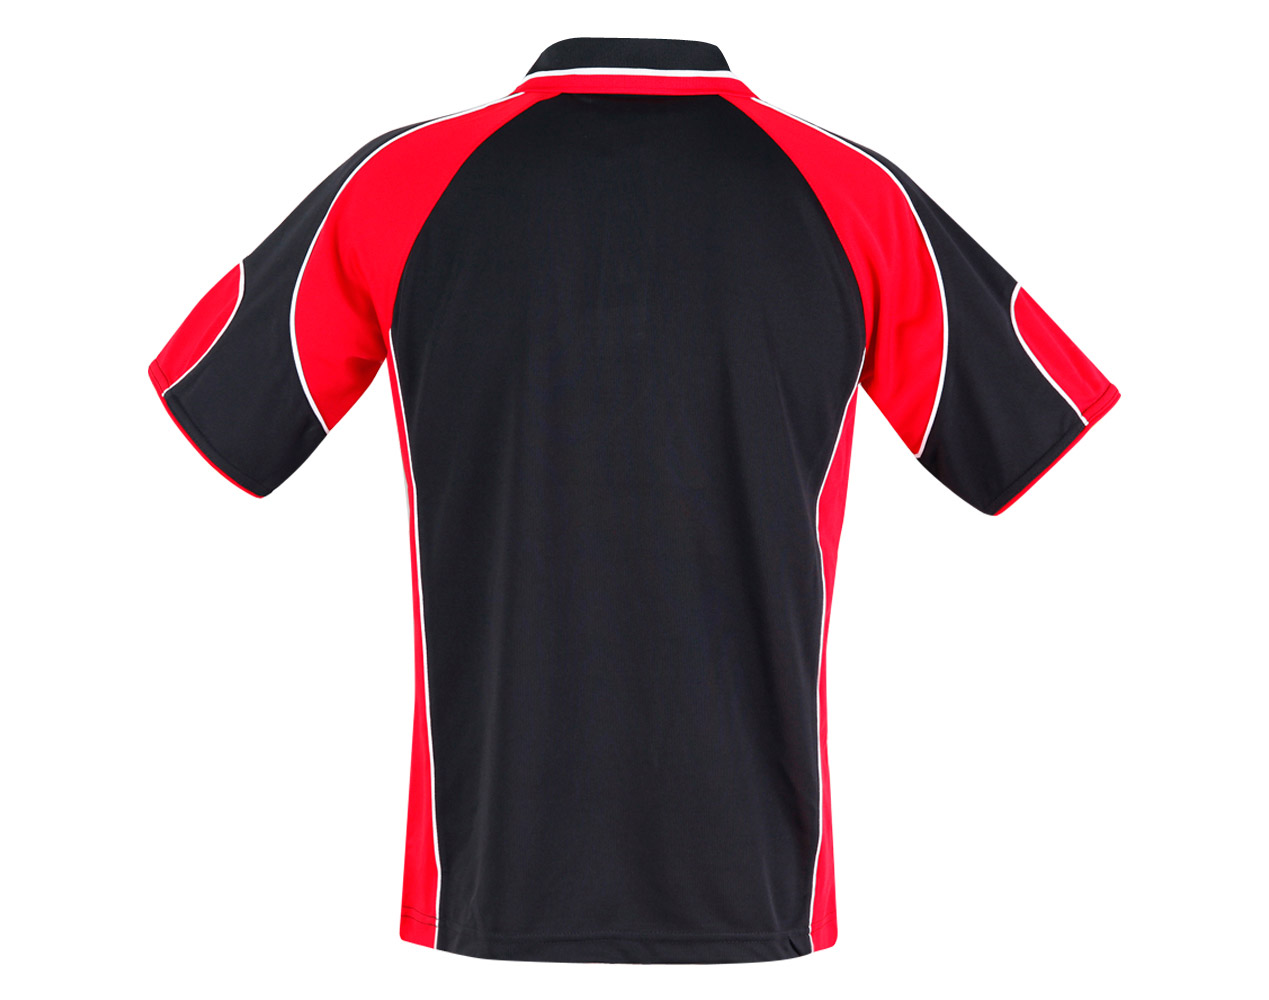 https://s3-ap-southeast-1.amazonaws.com/ws-imgs/POLOSHIRTS/PS61_BlackRed_Back.jpg